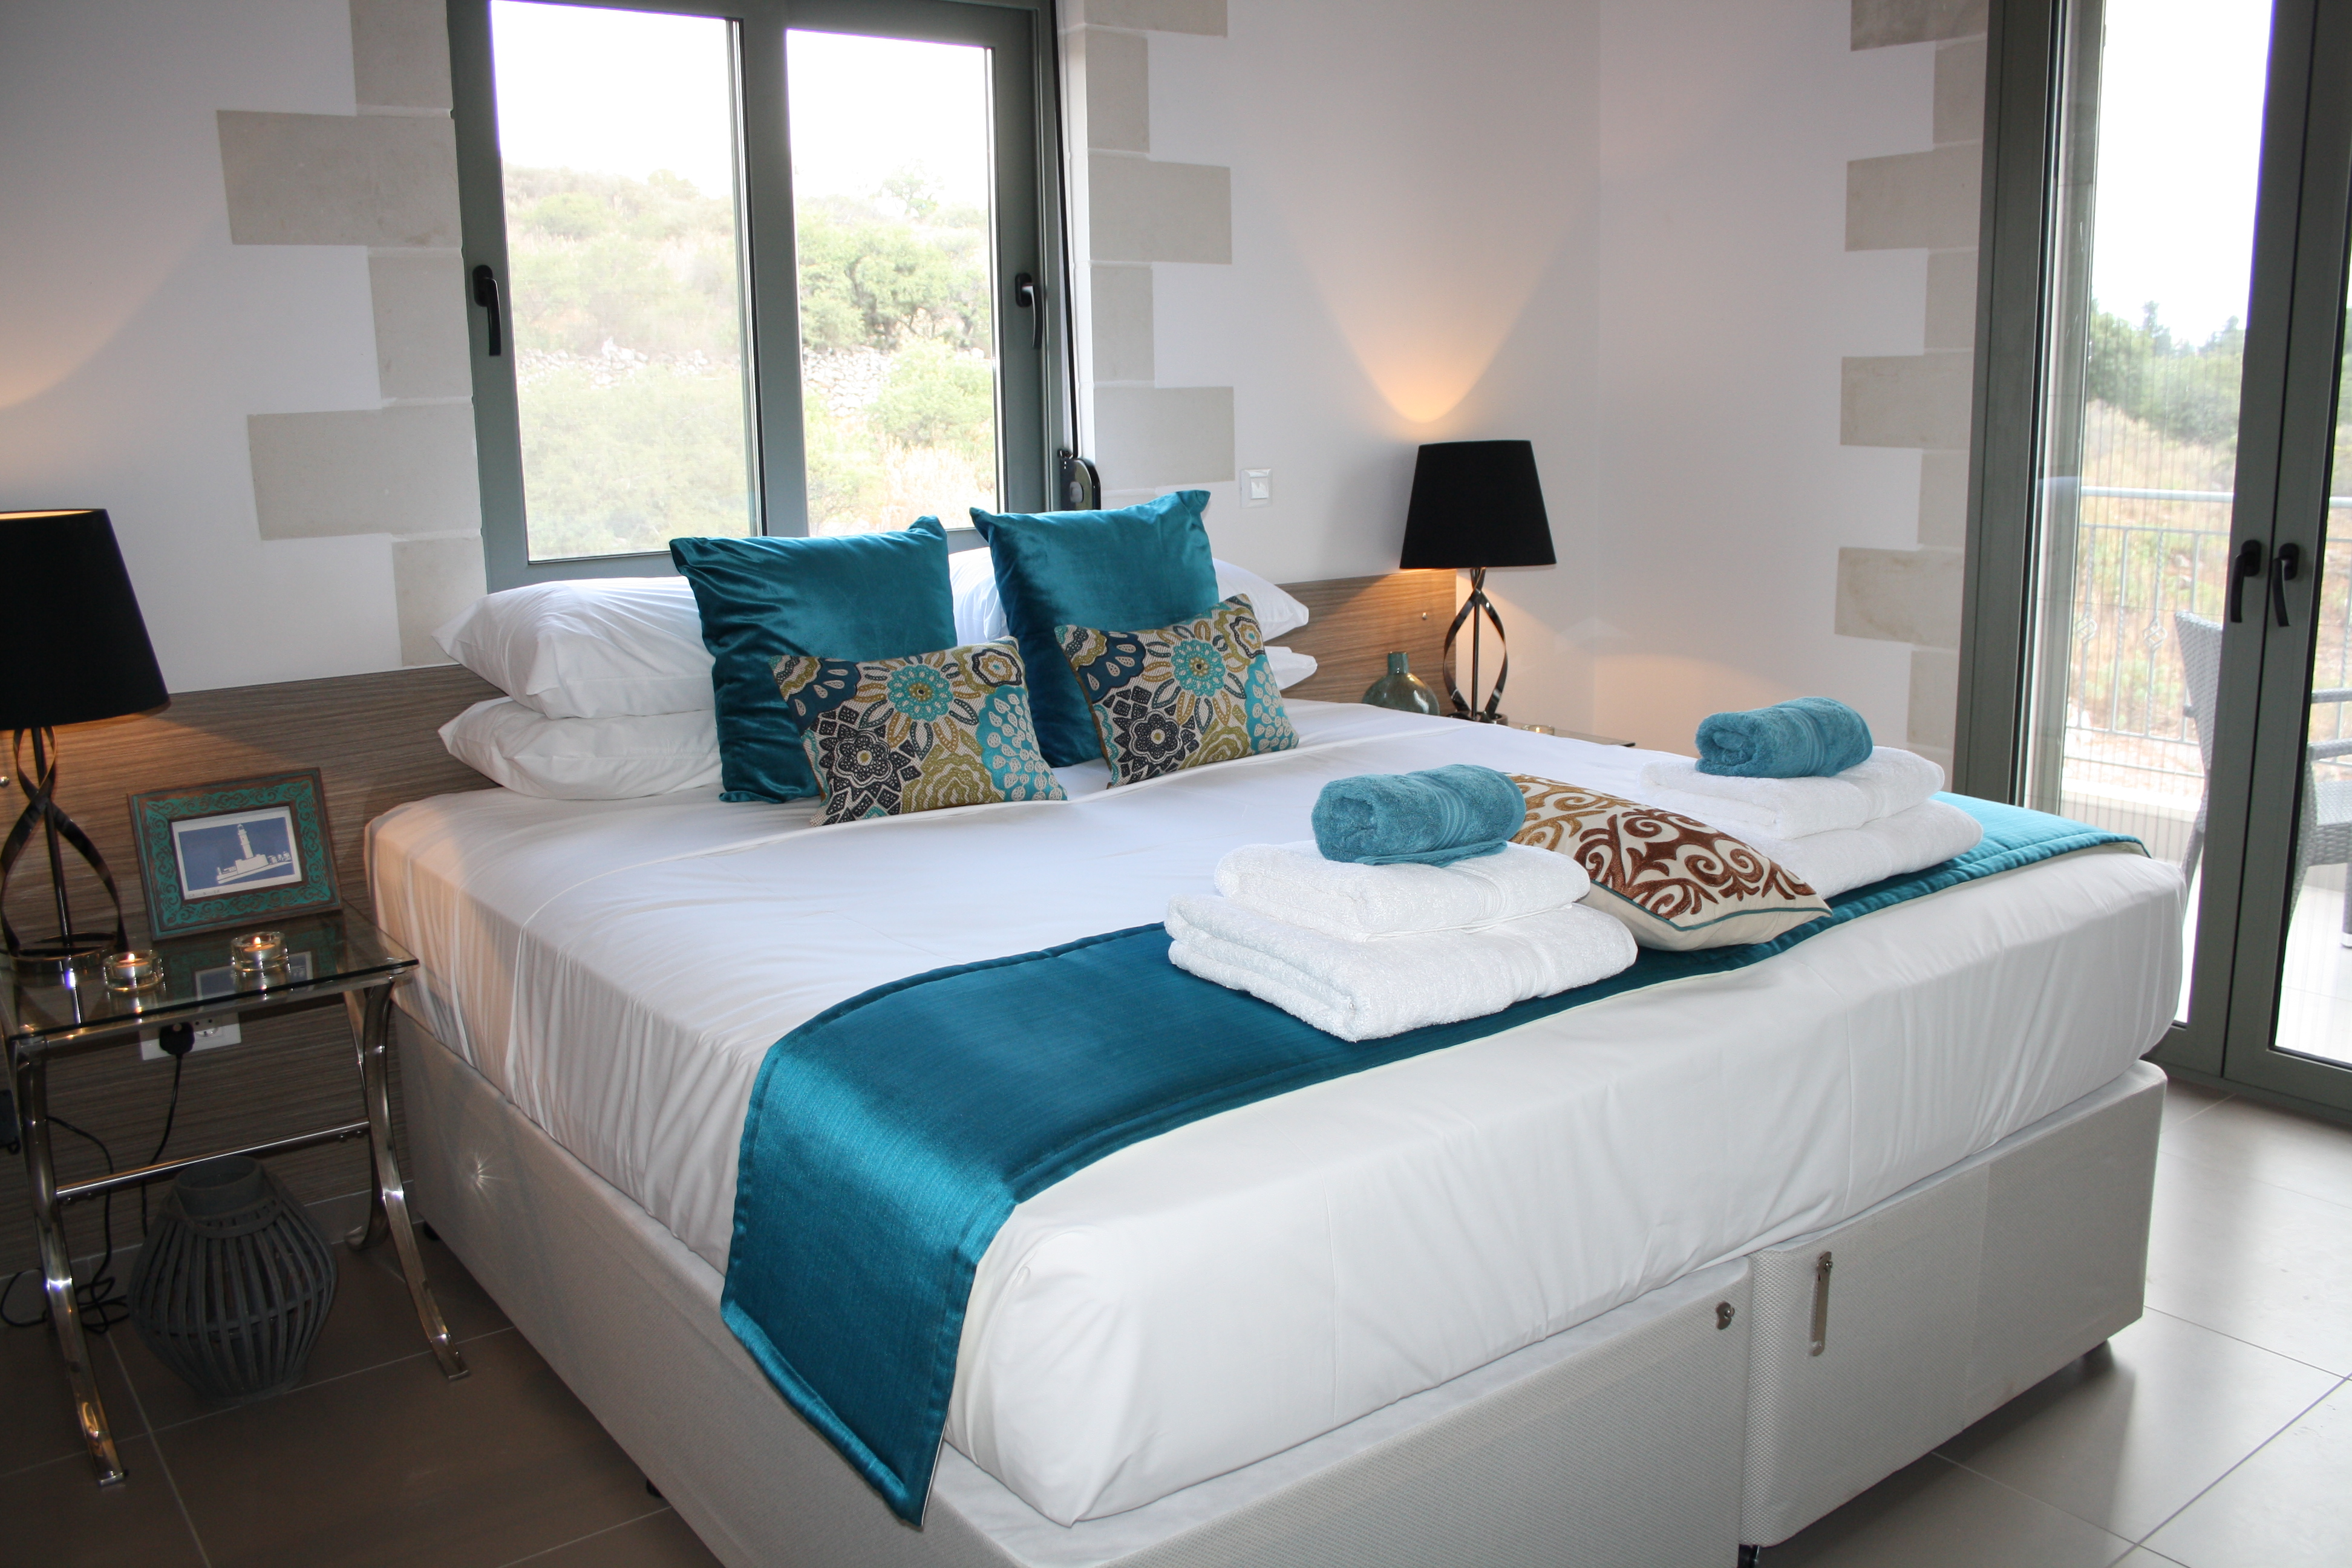 The Teal room